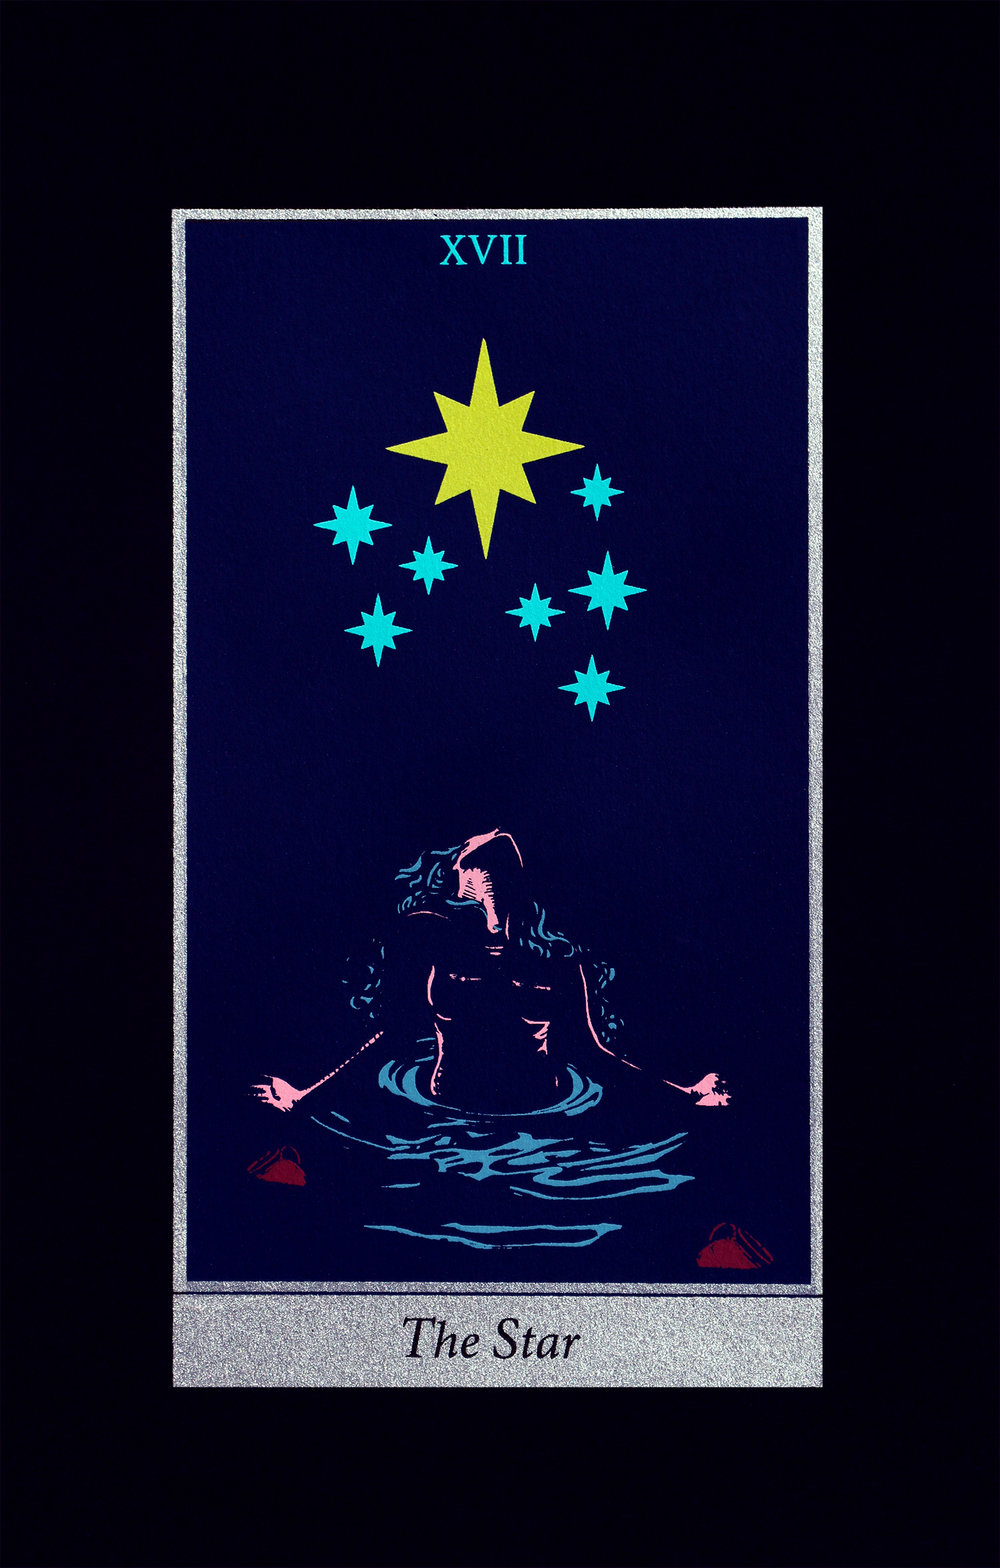 The Star, 2018, screenprint on black Strathmore paper, 8x12""